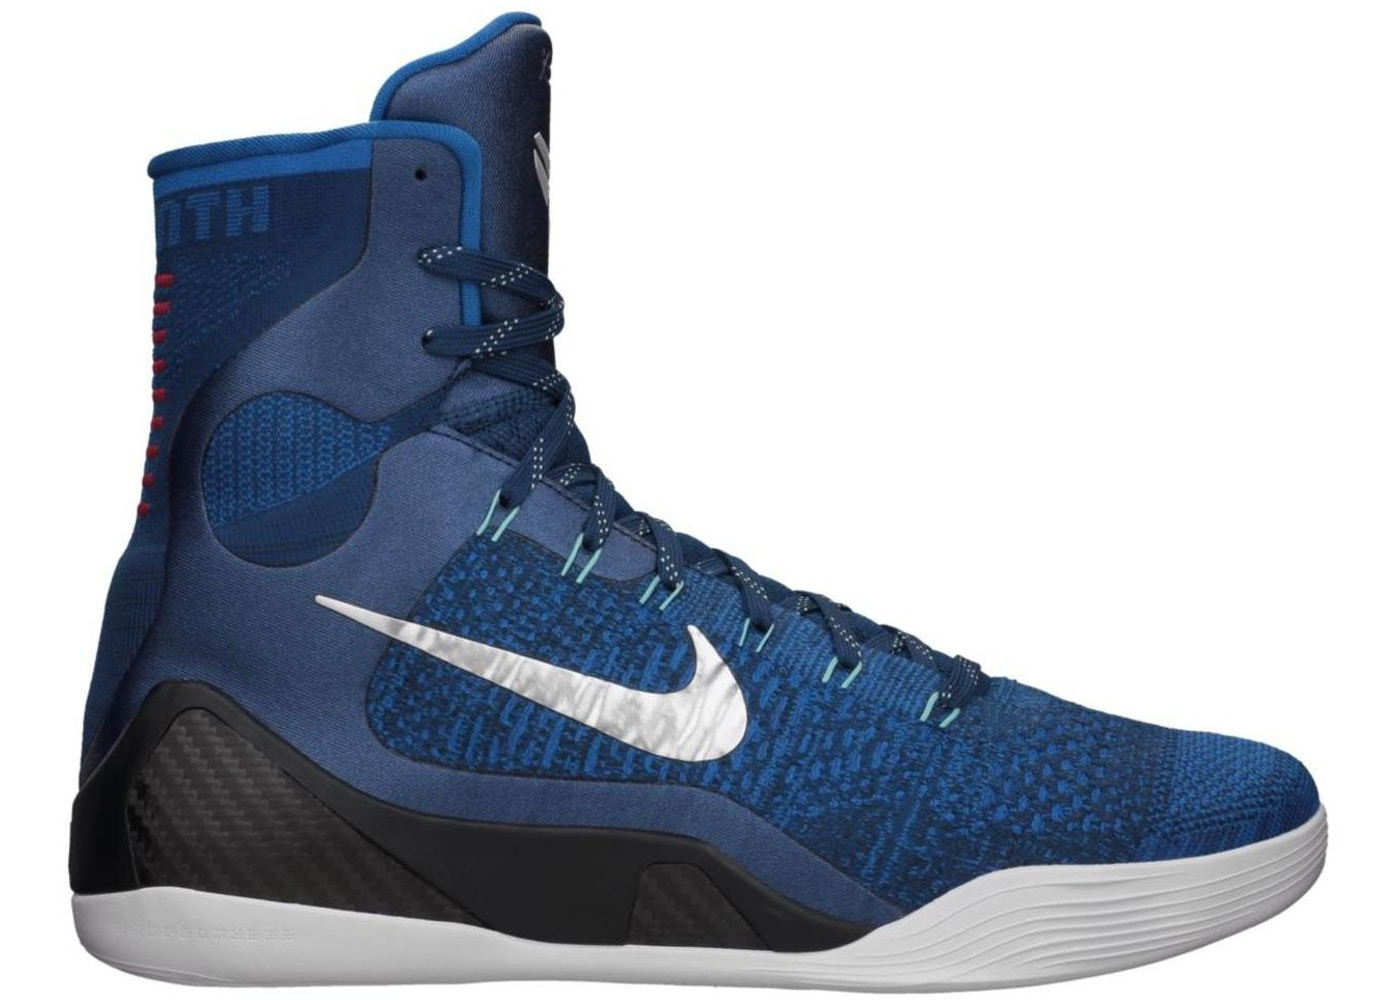 reputable site a43d1 899a7 Nike Kobe 9 Shoes - Release Date